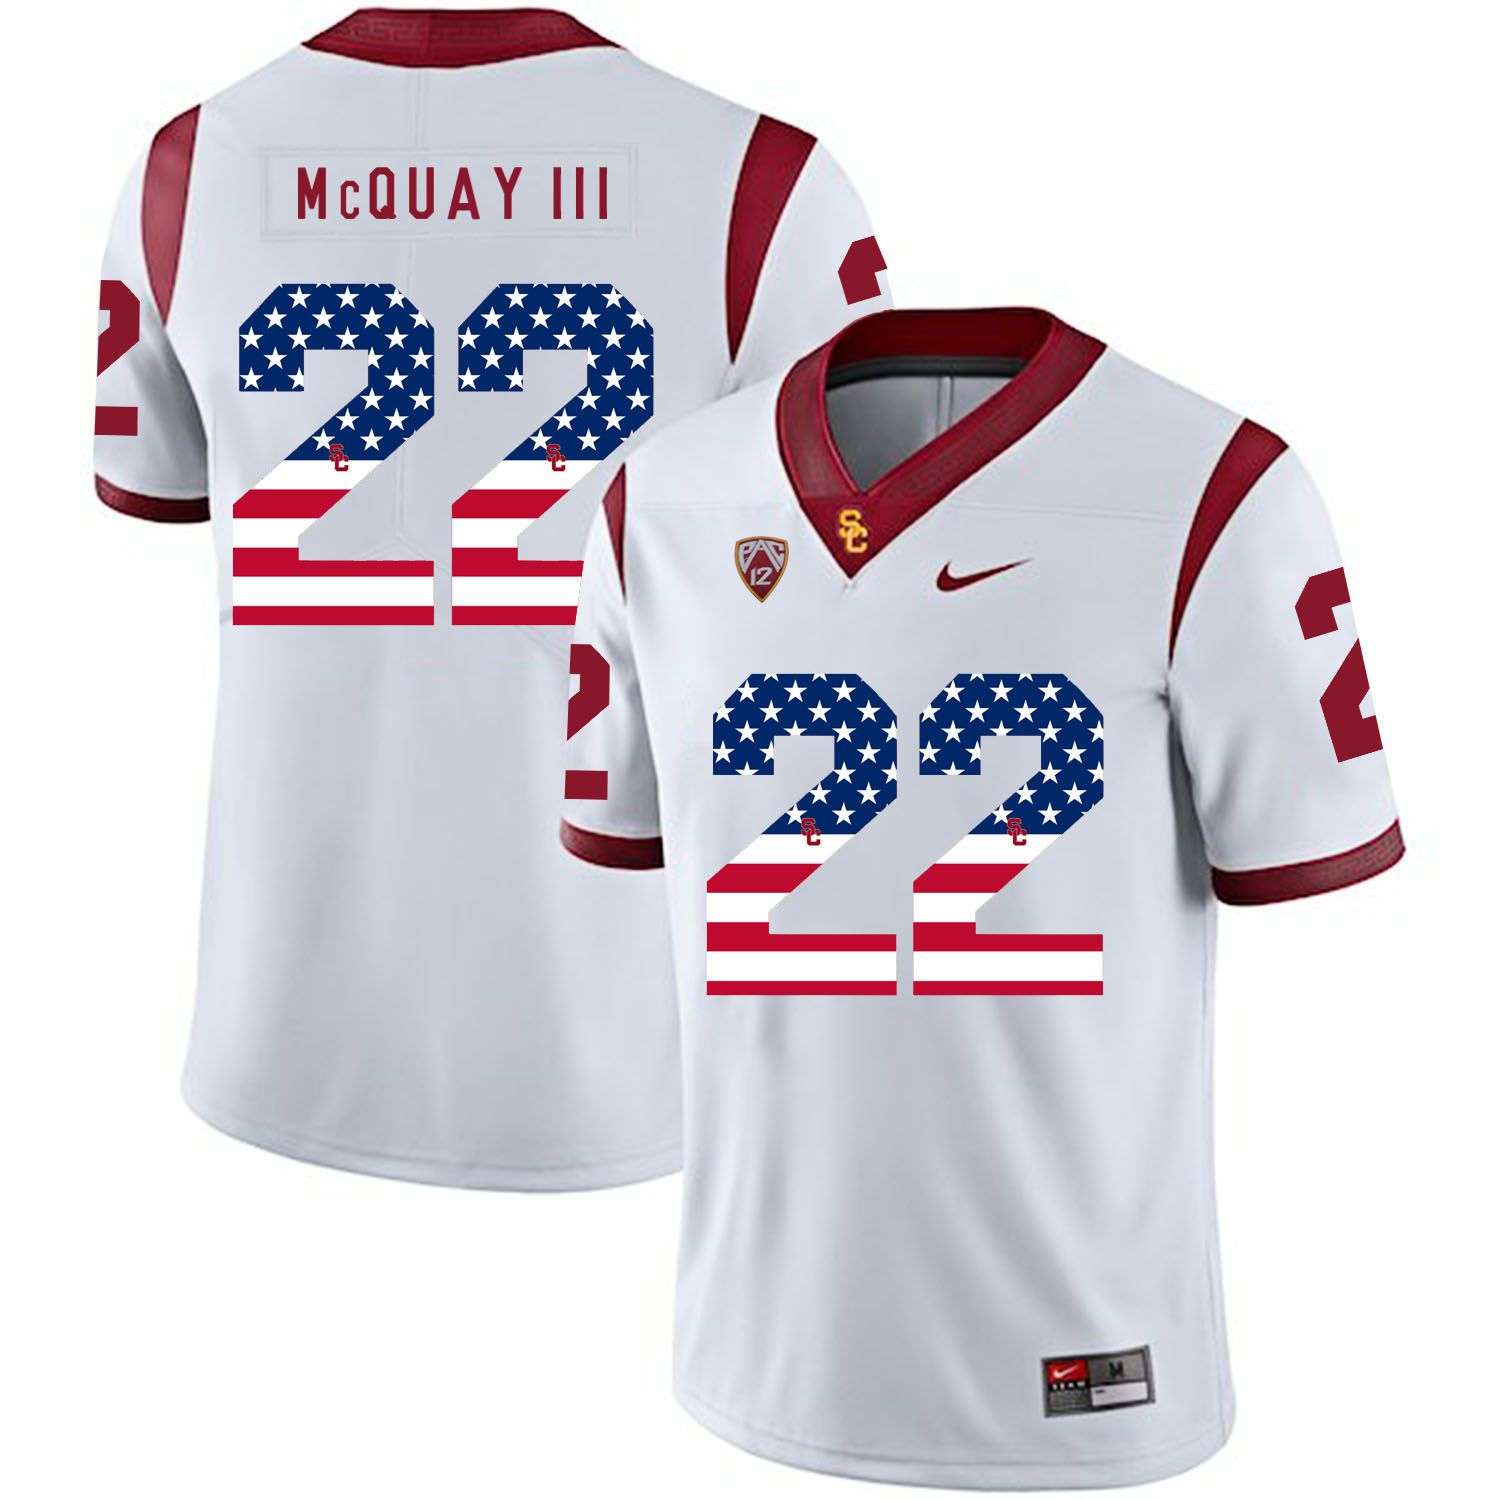 Men USC Trojans 22 Mcquay iii White Flag Customized NCAA Jerseys